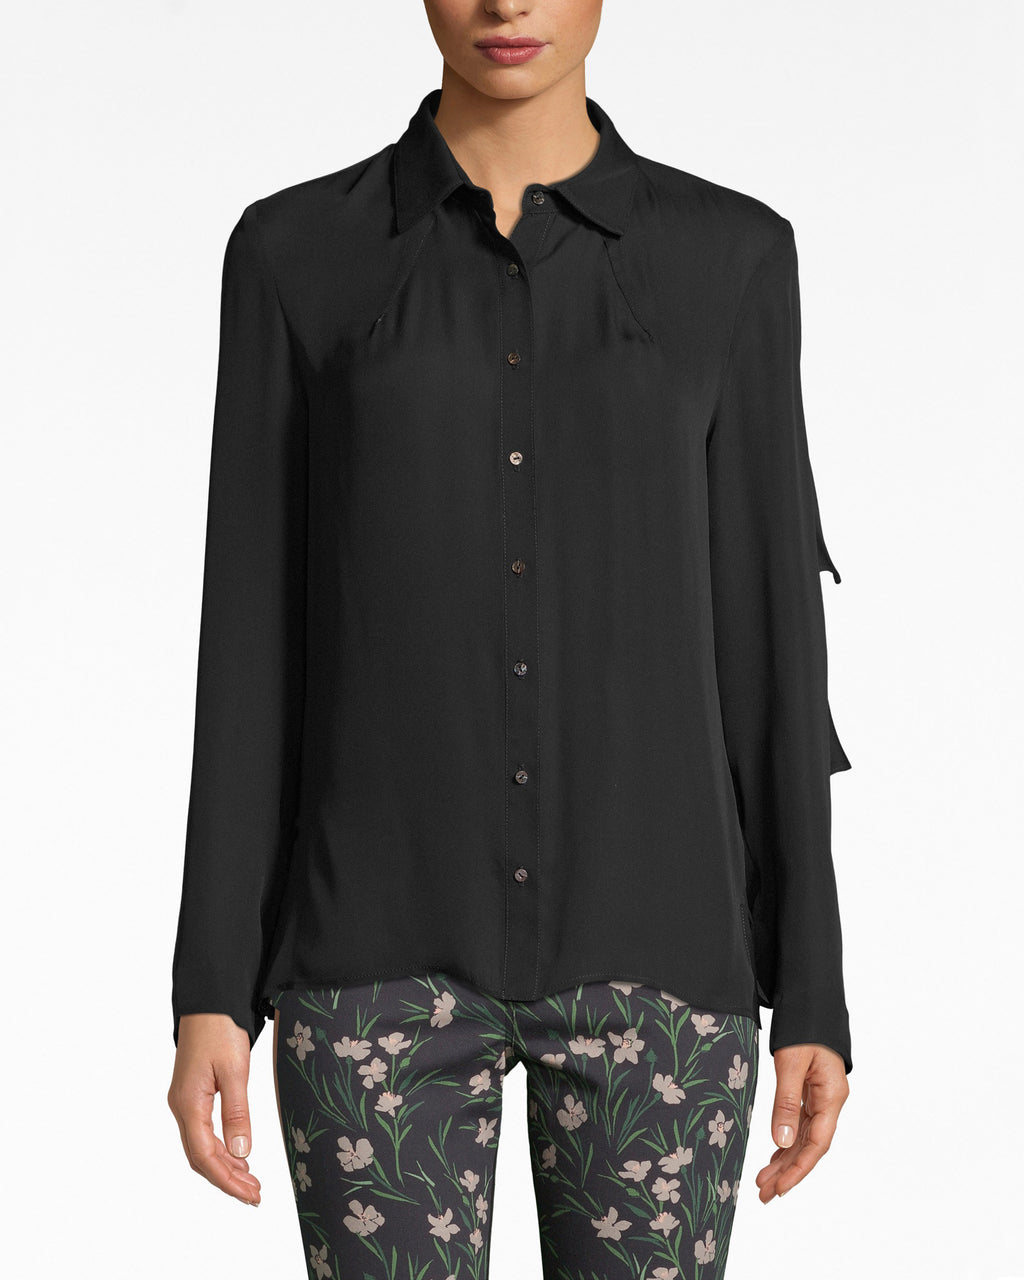 BF10387 - SOLID SILK FLOUNCE BOYFRIEND BLOUSE - tops - blouses - This blouse is full of surprises. The front has the classic bf details: front buttons, and flowy sleeves. Turn it around, and you'll see flounces of ruffles and possibilities. Lined.